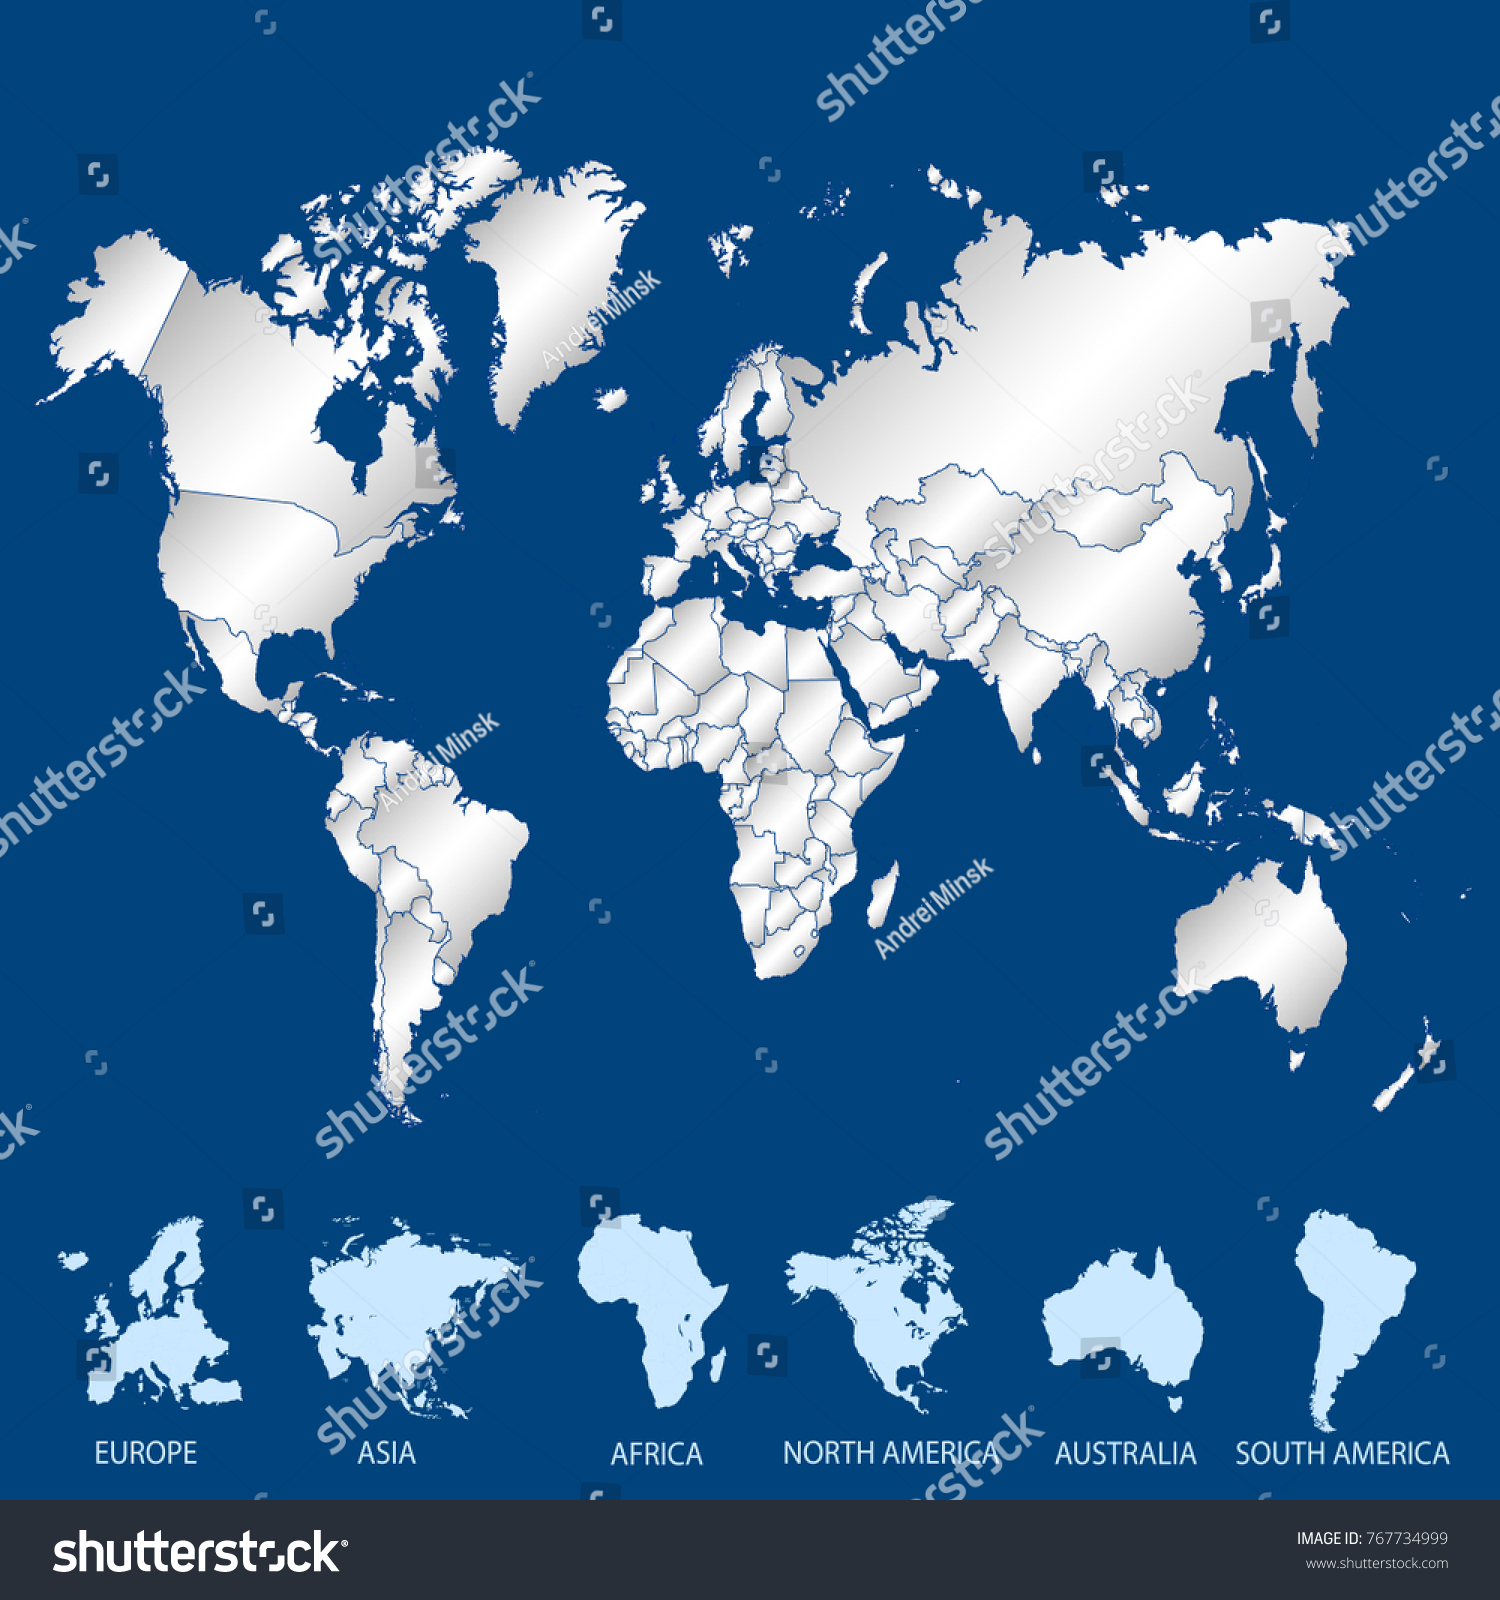 World map europe asia america africa vectores en stock 767734999 world map europe asia america africa australia gumiabroncs Images